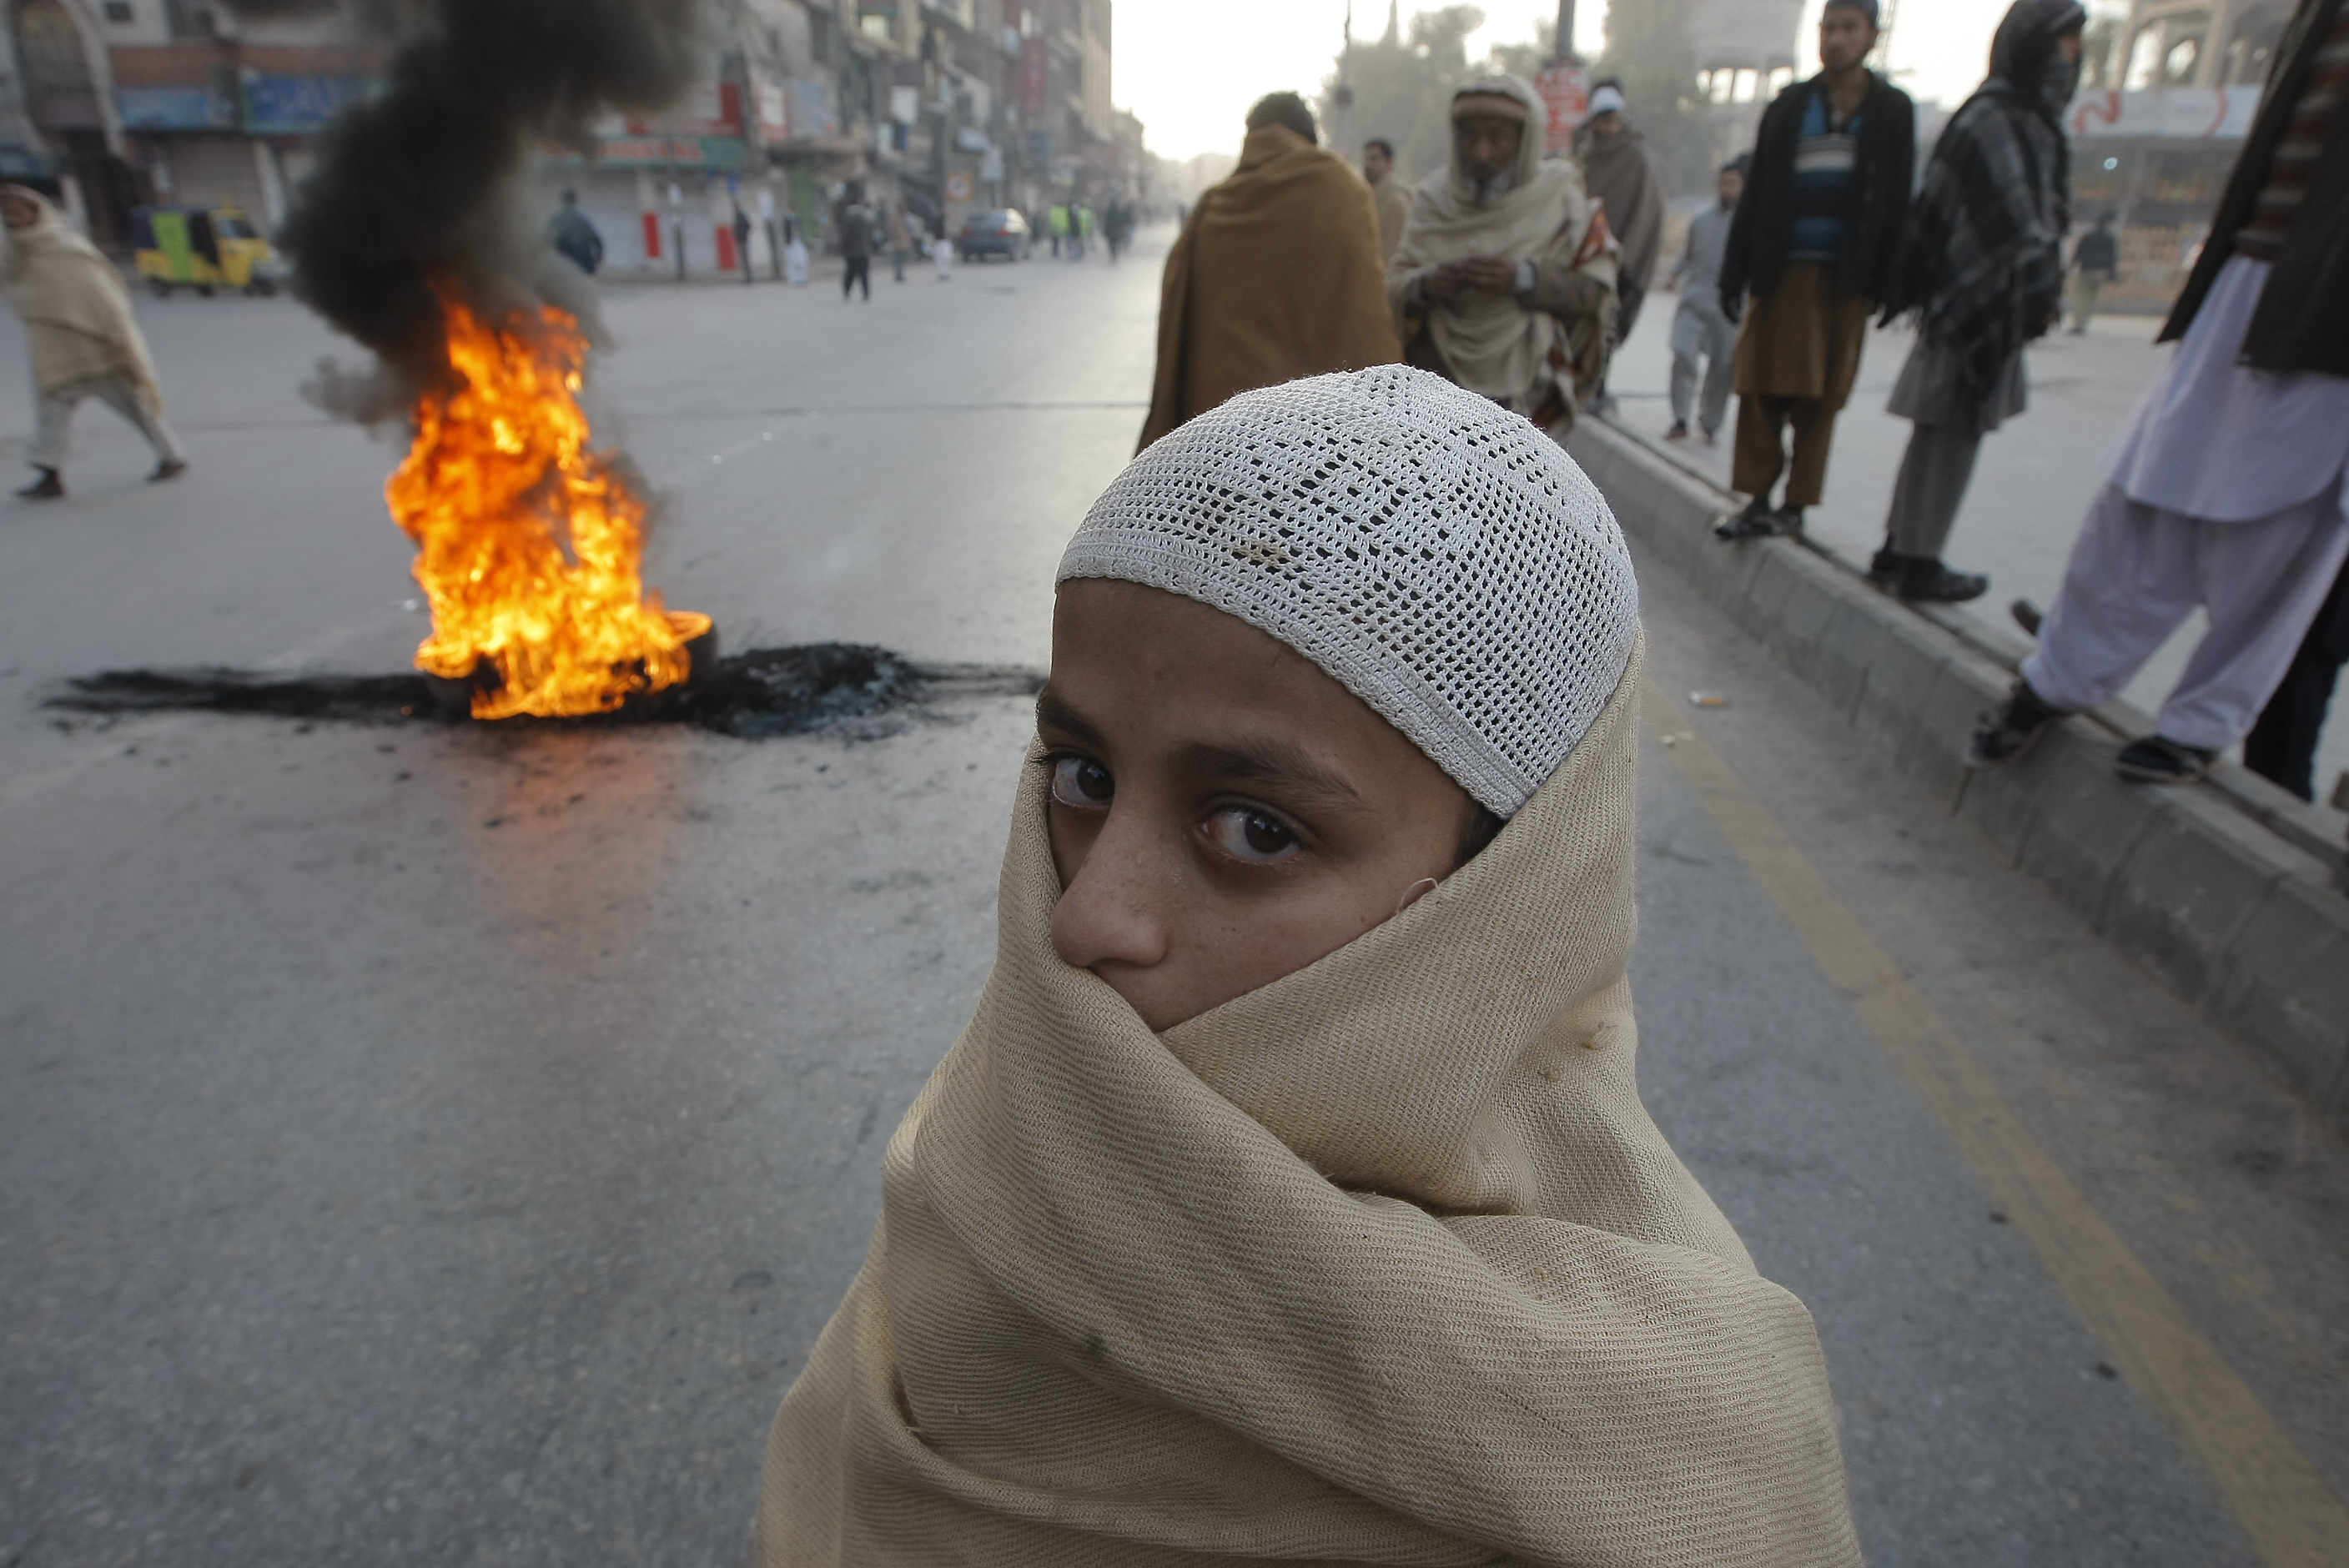 A Pakistani religious student stands before a tire set on fire by anti-government protesters, Wednesday, Dec. 31, 2014 in Peshawar, Pakistan. Police have arrested demonstrators demanding the government to unmask culprits of the Taliban attack on a military run school where scores of children were killed on Dec. 16, 2014. (AP Photo/Mohammad Sajjad)